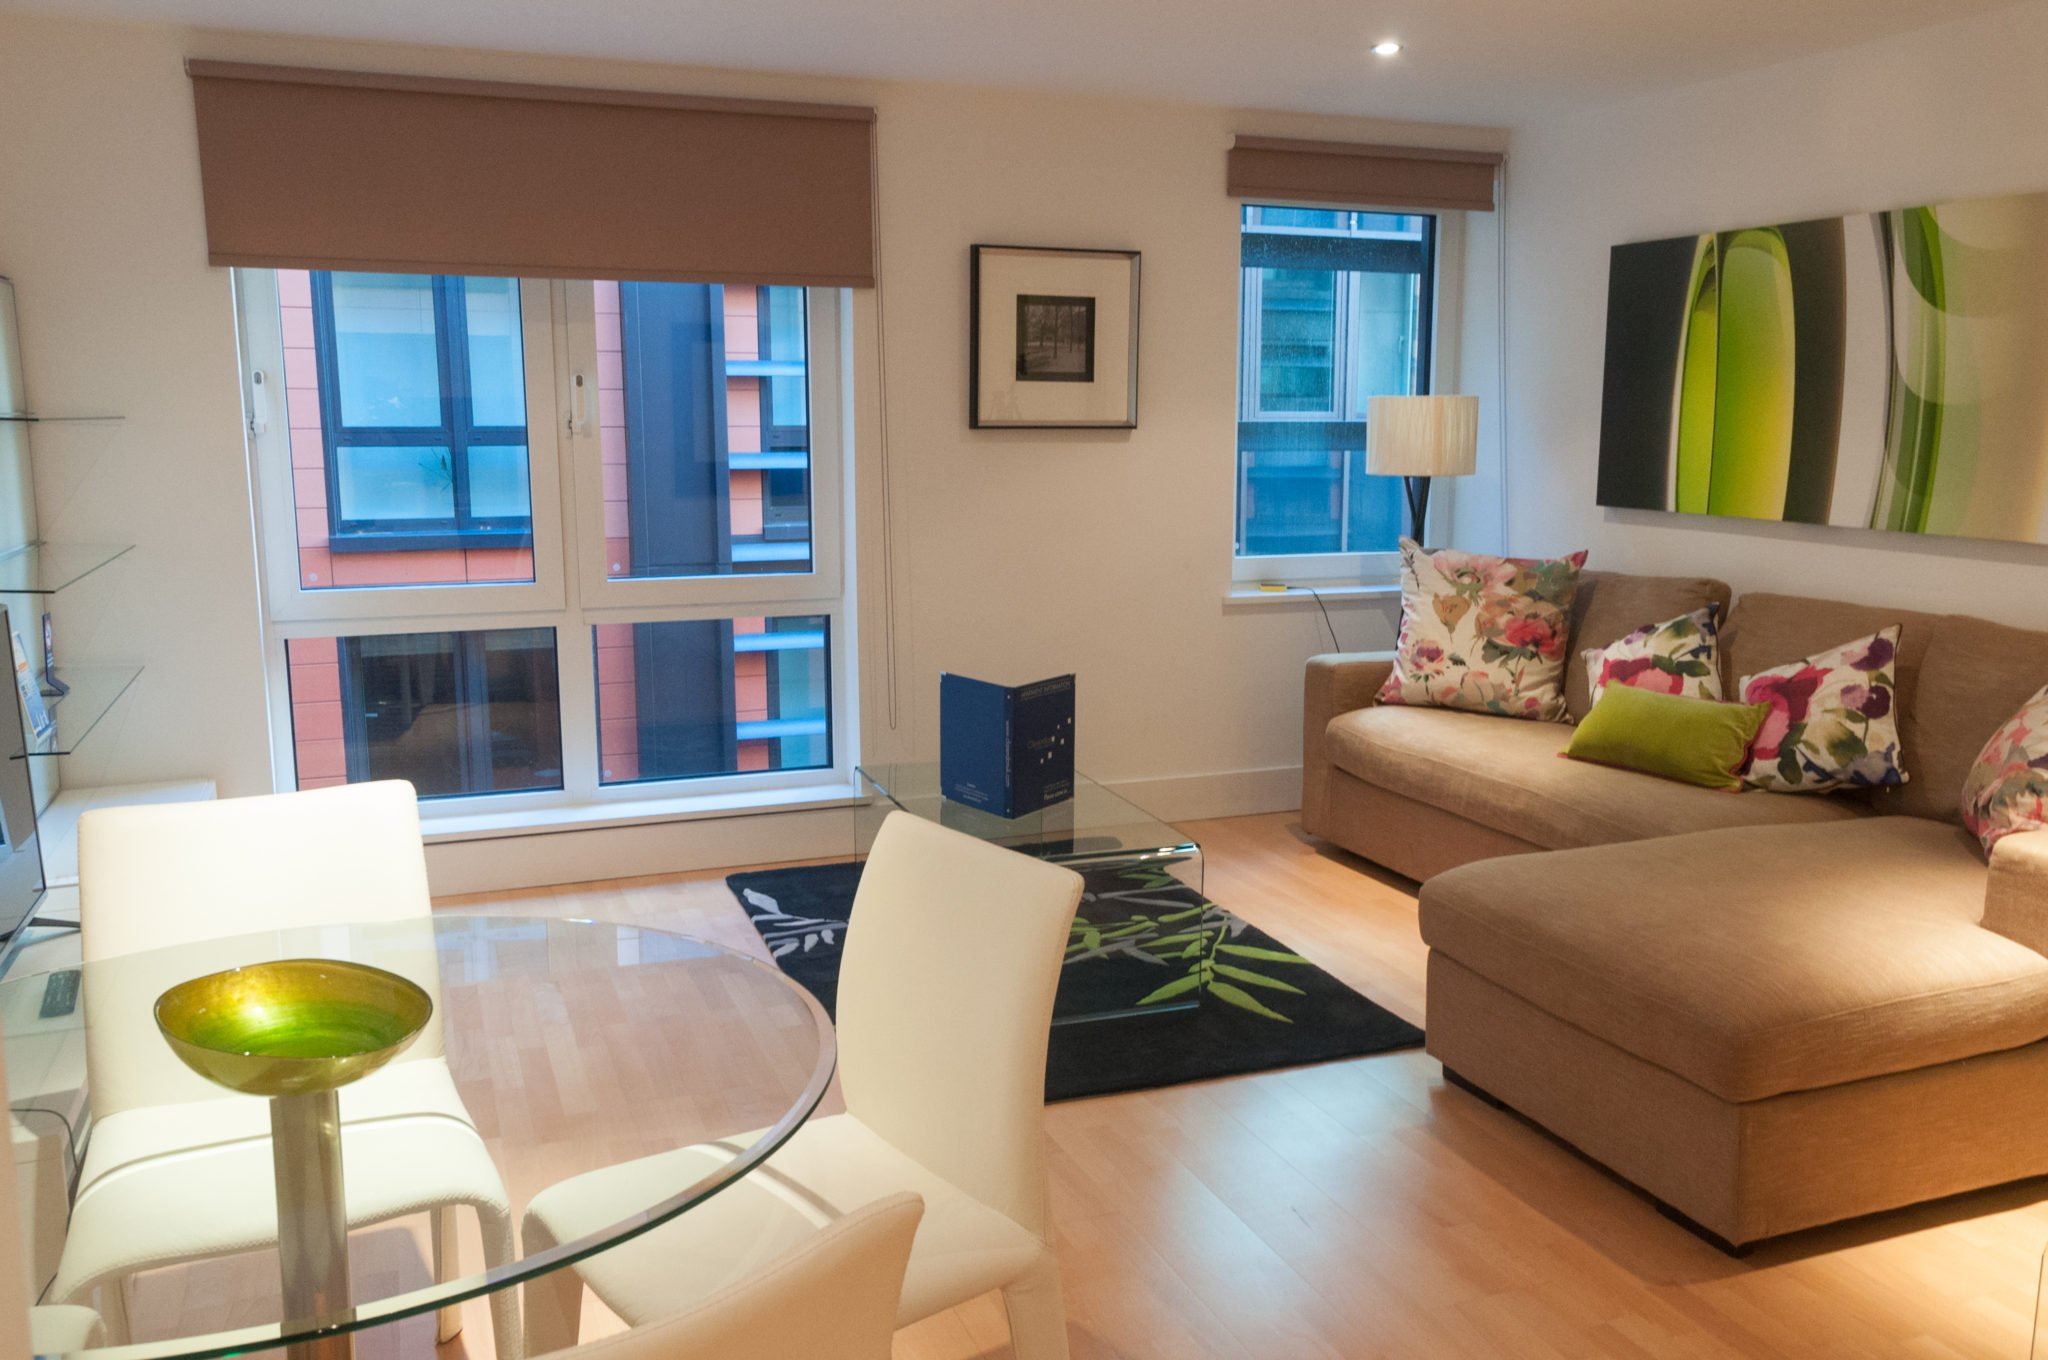 Southwark-Serviced-Accommodation-London-|-Cheap-Sir-John-Lyon-House|-Free-Wi-Fi-|-Fully-Equipped-Kitchen-|-Book-Now-|0208-6913920